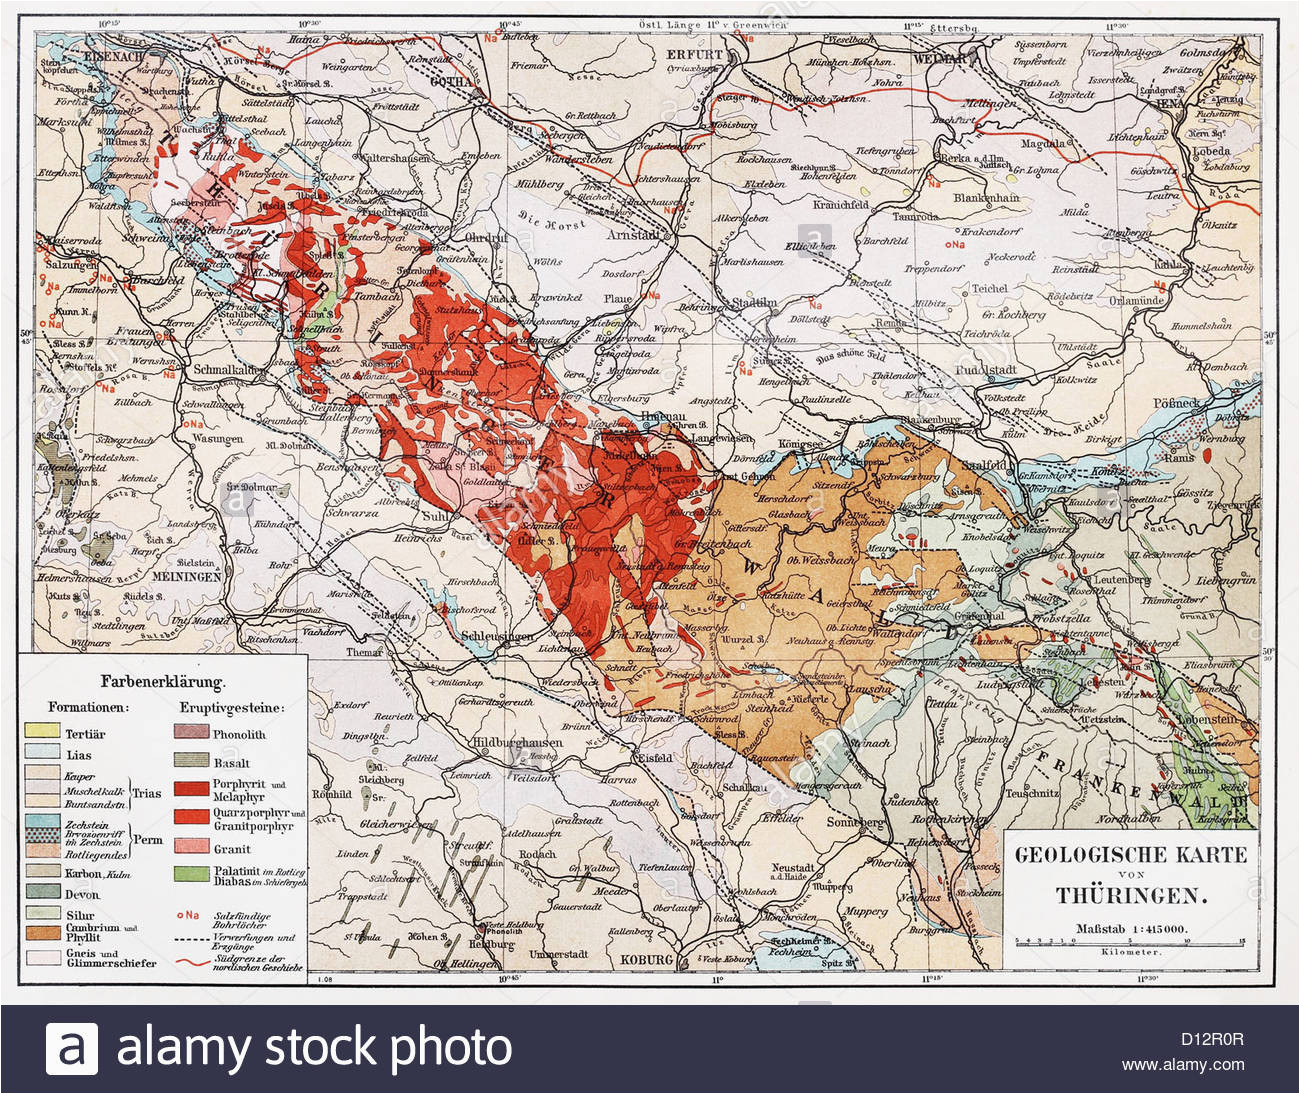 geological map stock photos geological map stock images alamy